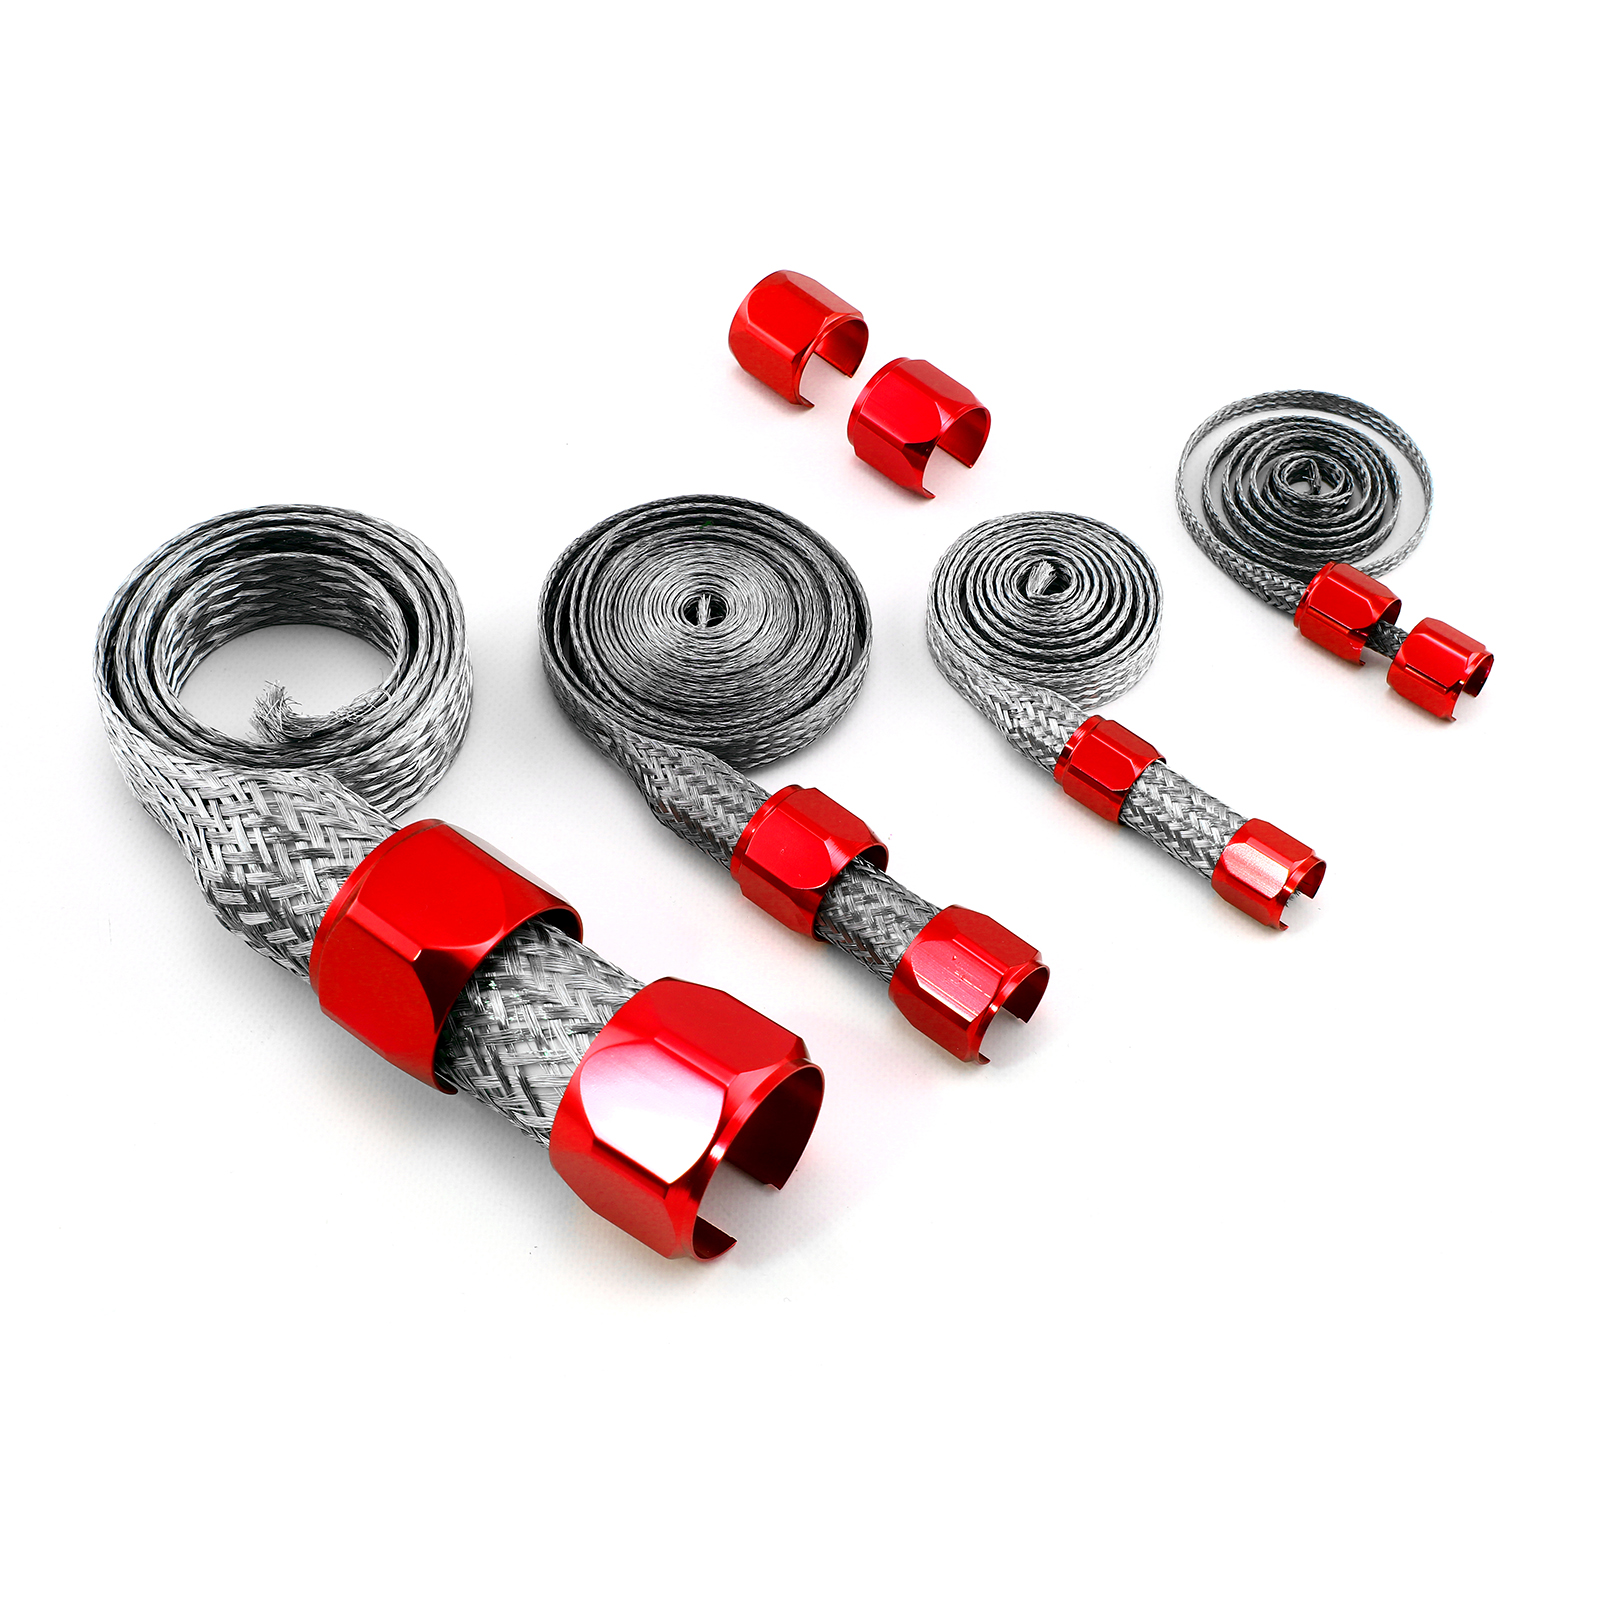 Universal Stainless Steel Braide Hose and End Sleeve Kit - Red